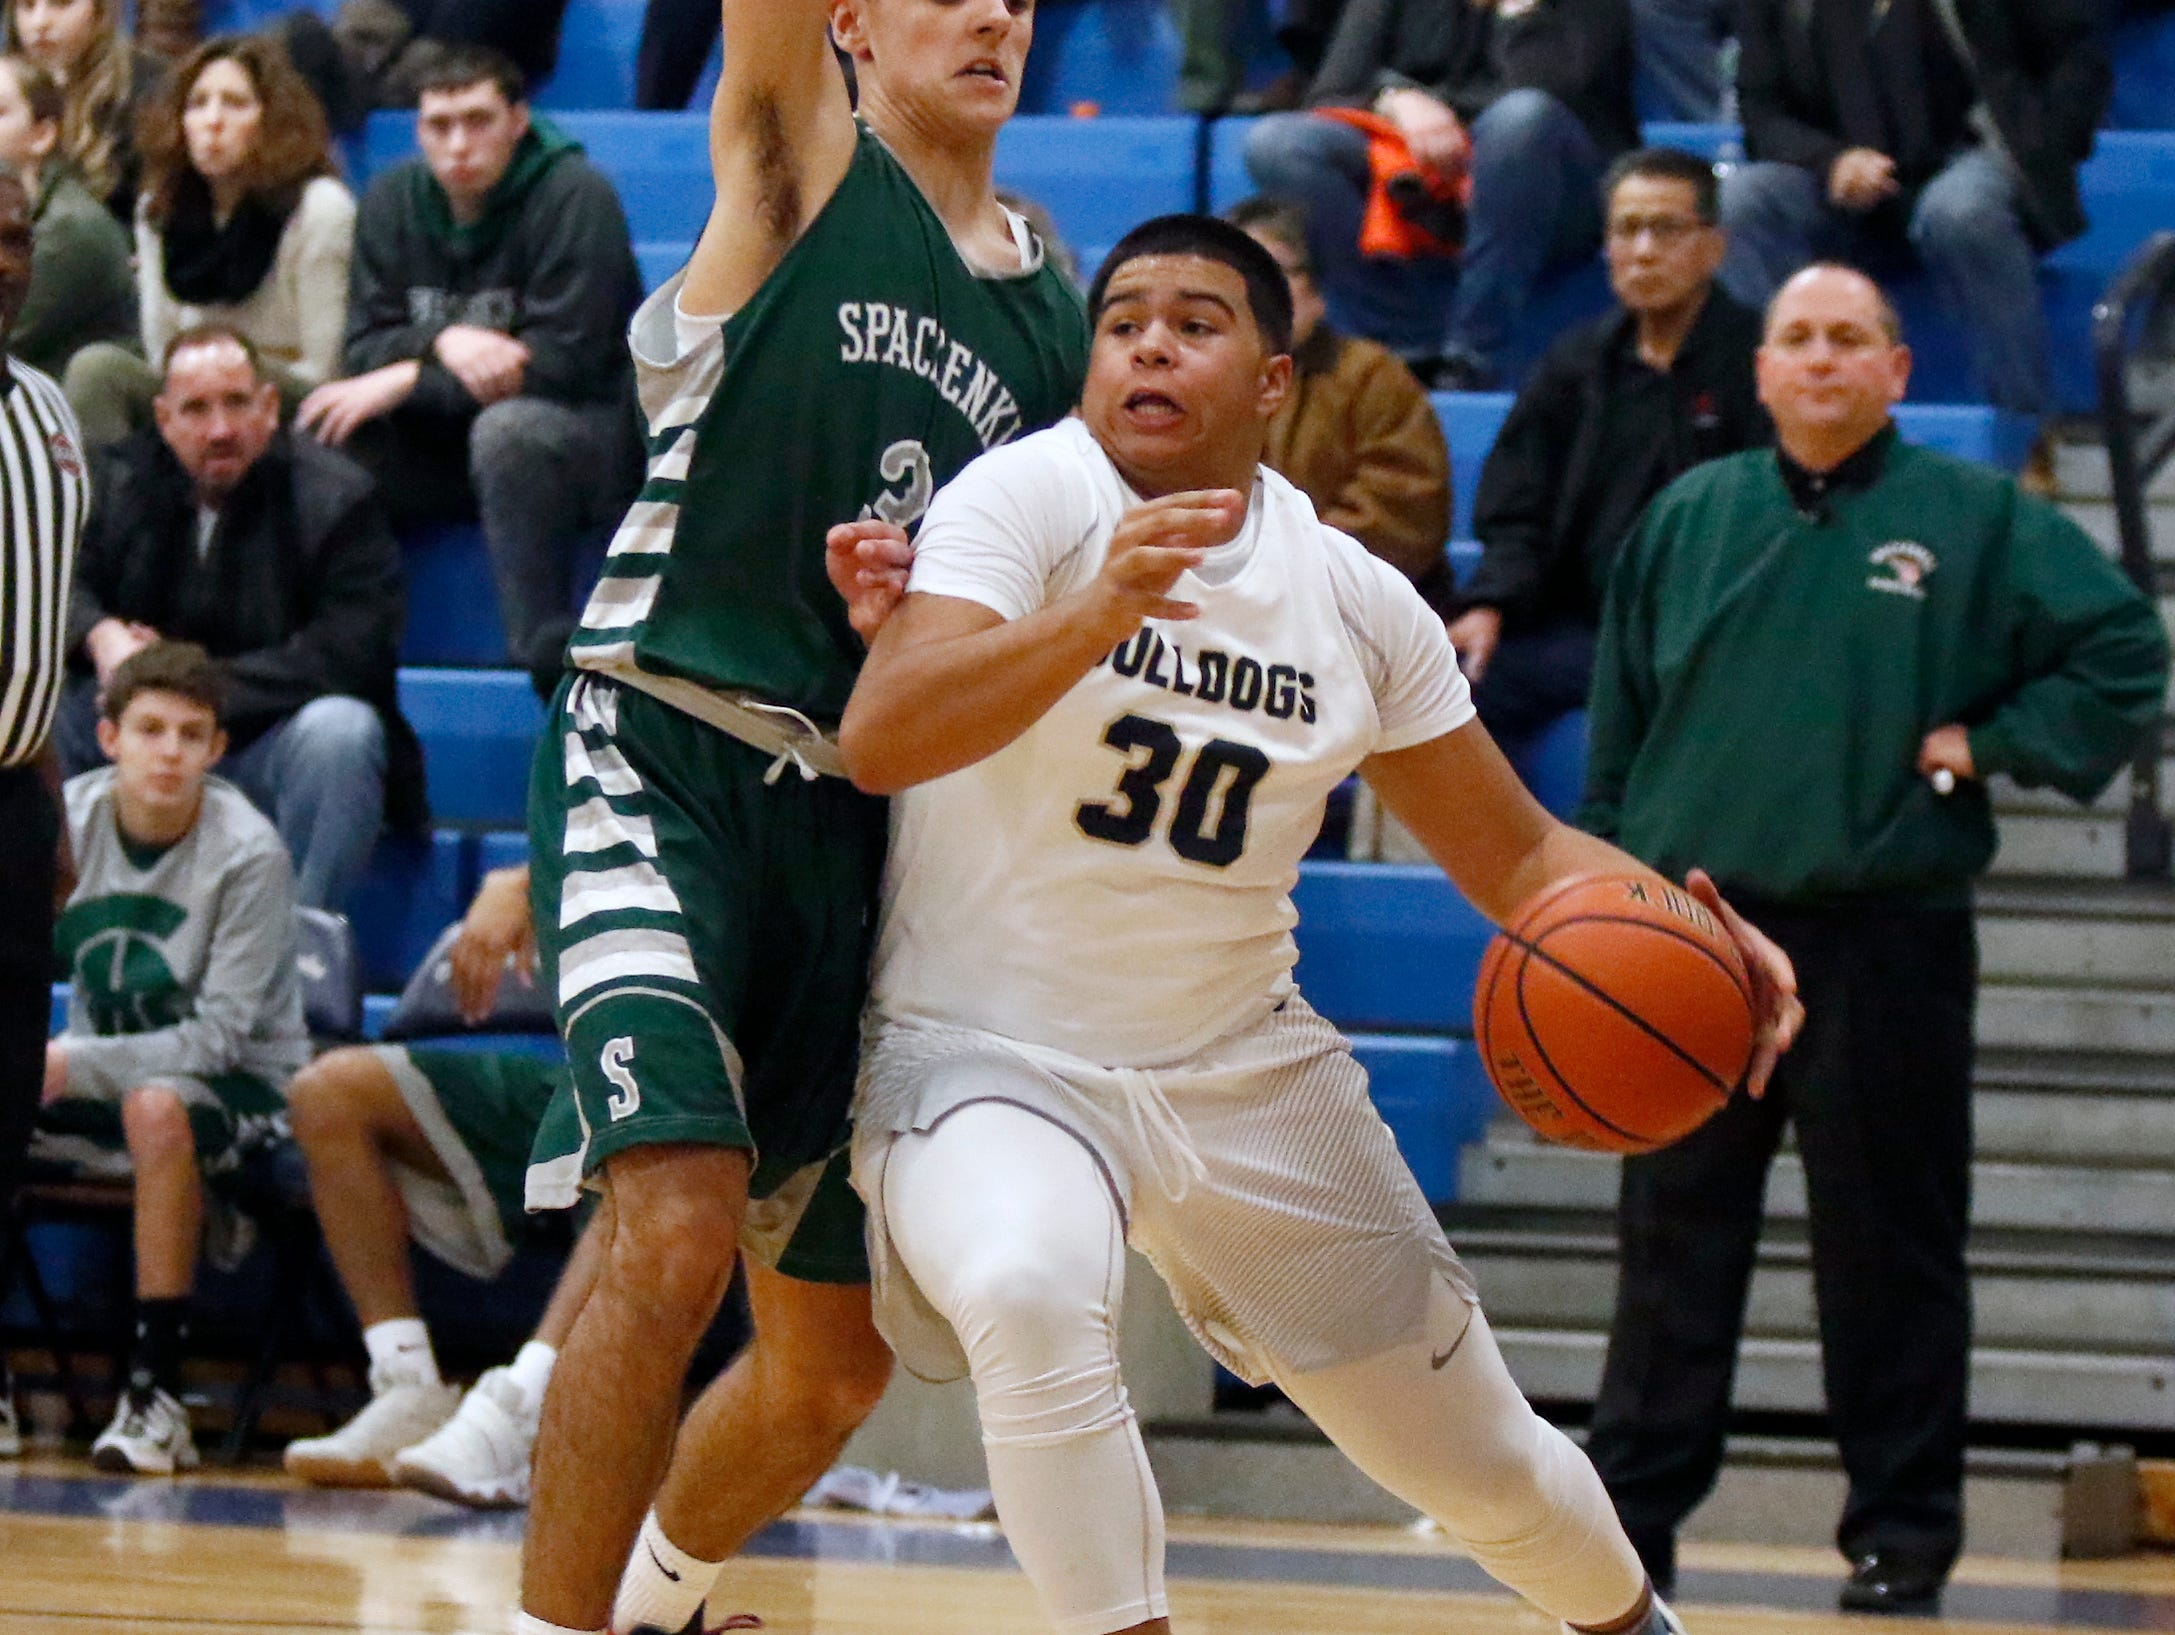 Beacon's Andre Davis (30) drives the baseline against Spackenkill's Haden Peek (3) in the championship game of the Duane Davis memorial basketball tournament at Our Lady of Lourdes High School in Poughkeepsie on Saturday, December 31, 2016.